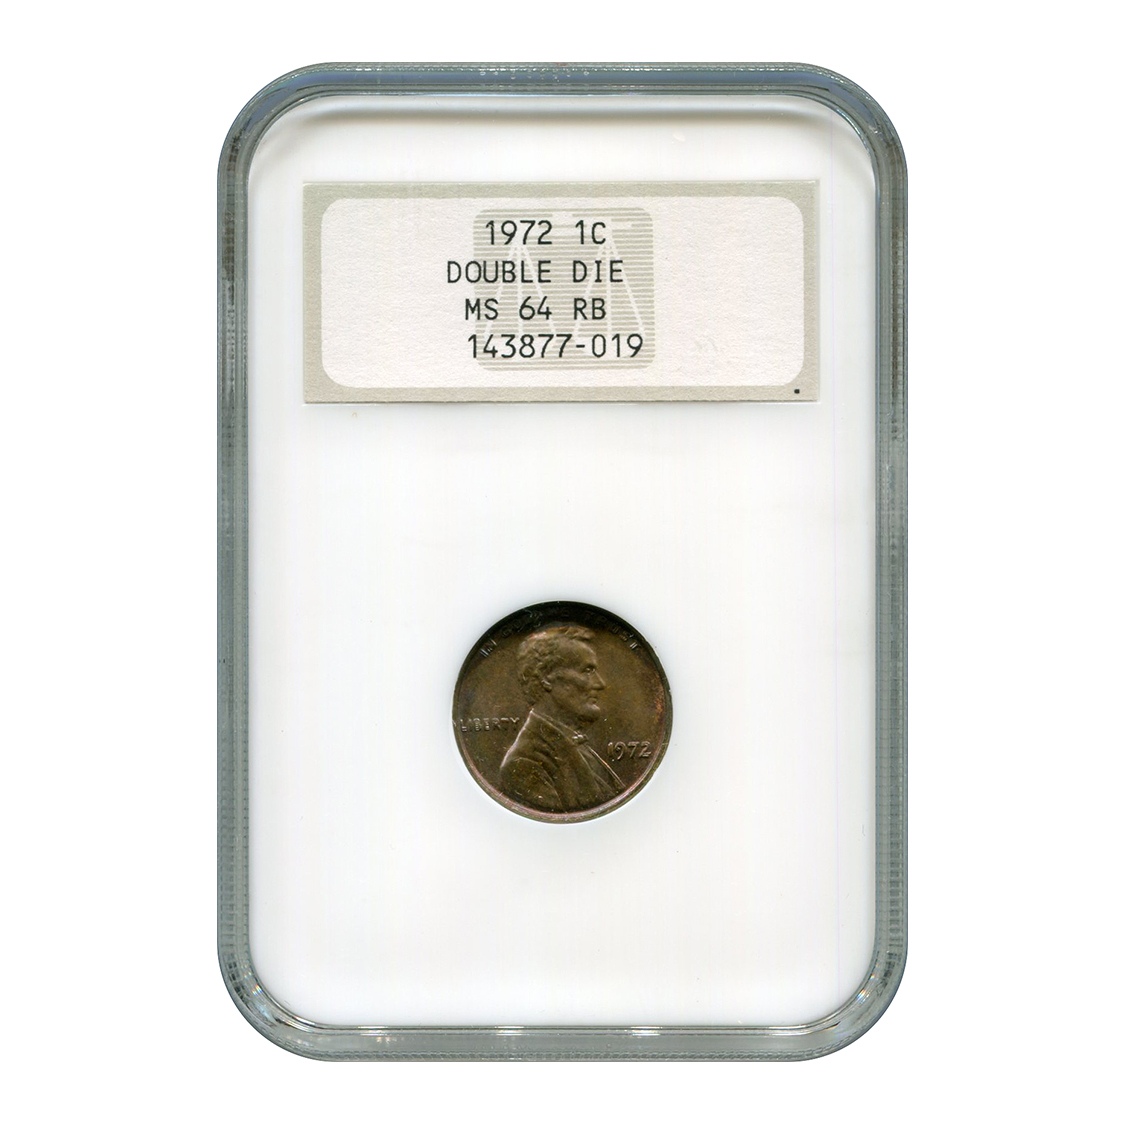 Certified Lincoln Cent 1972 MS64 RB NGC Double Die